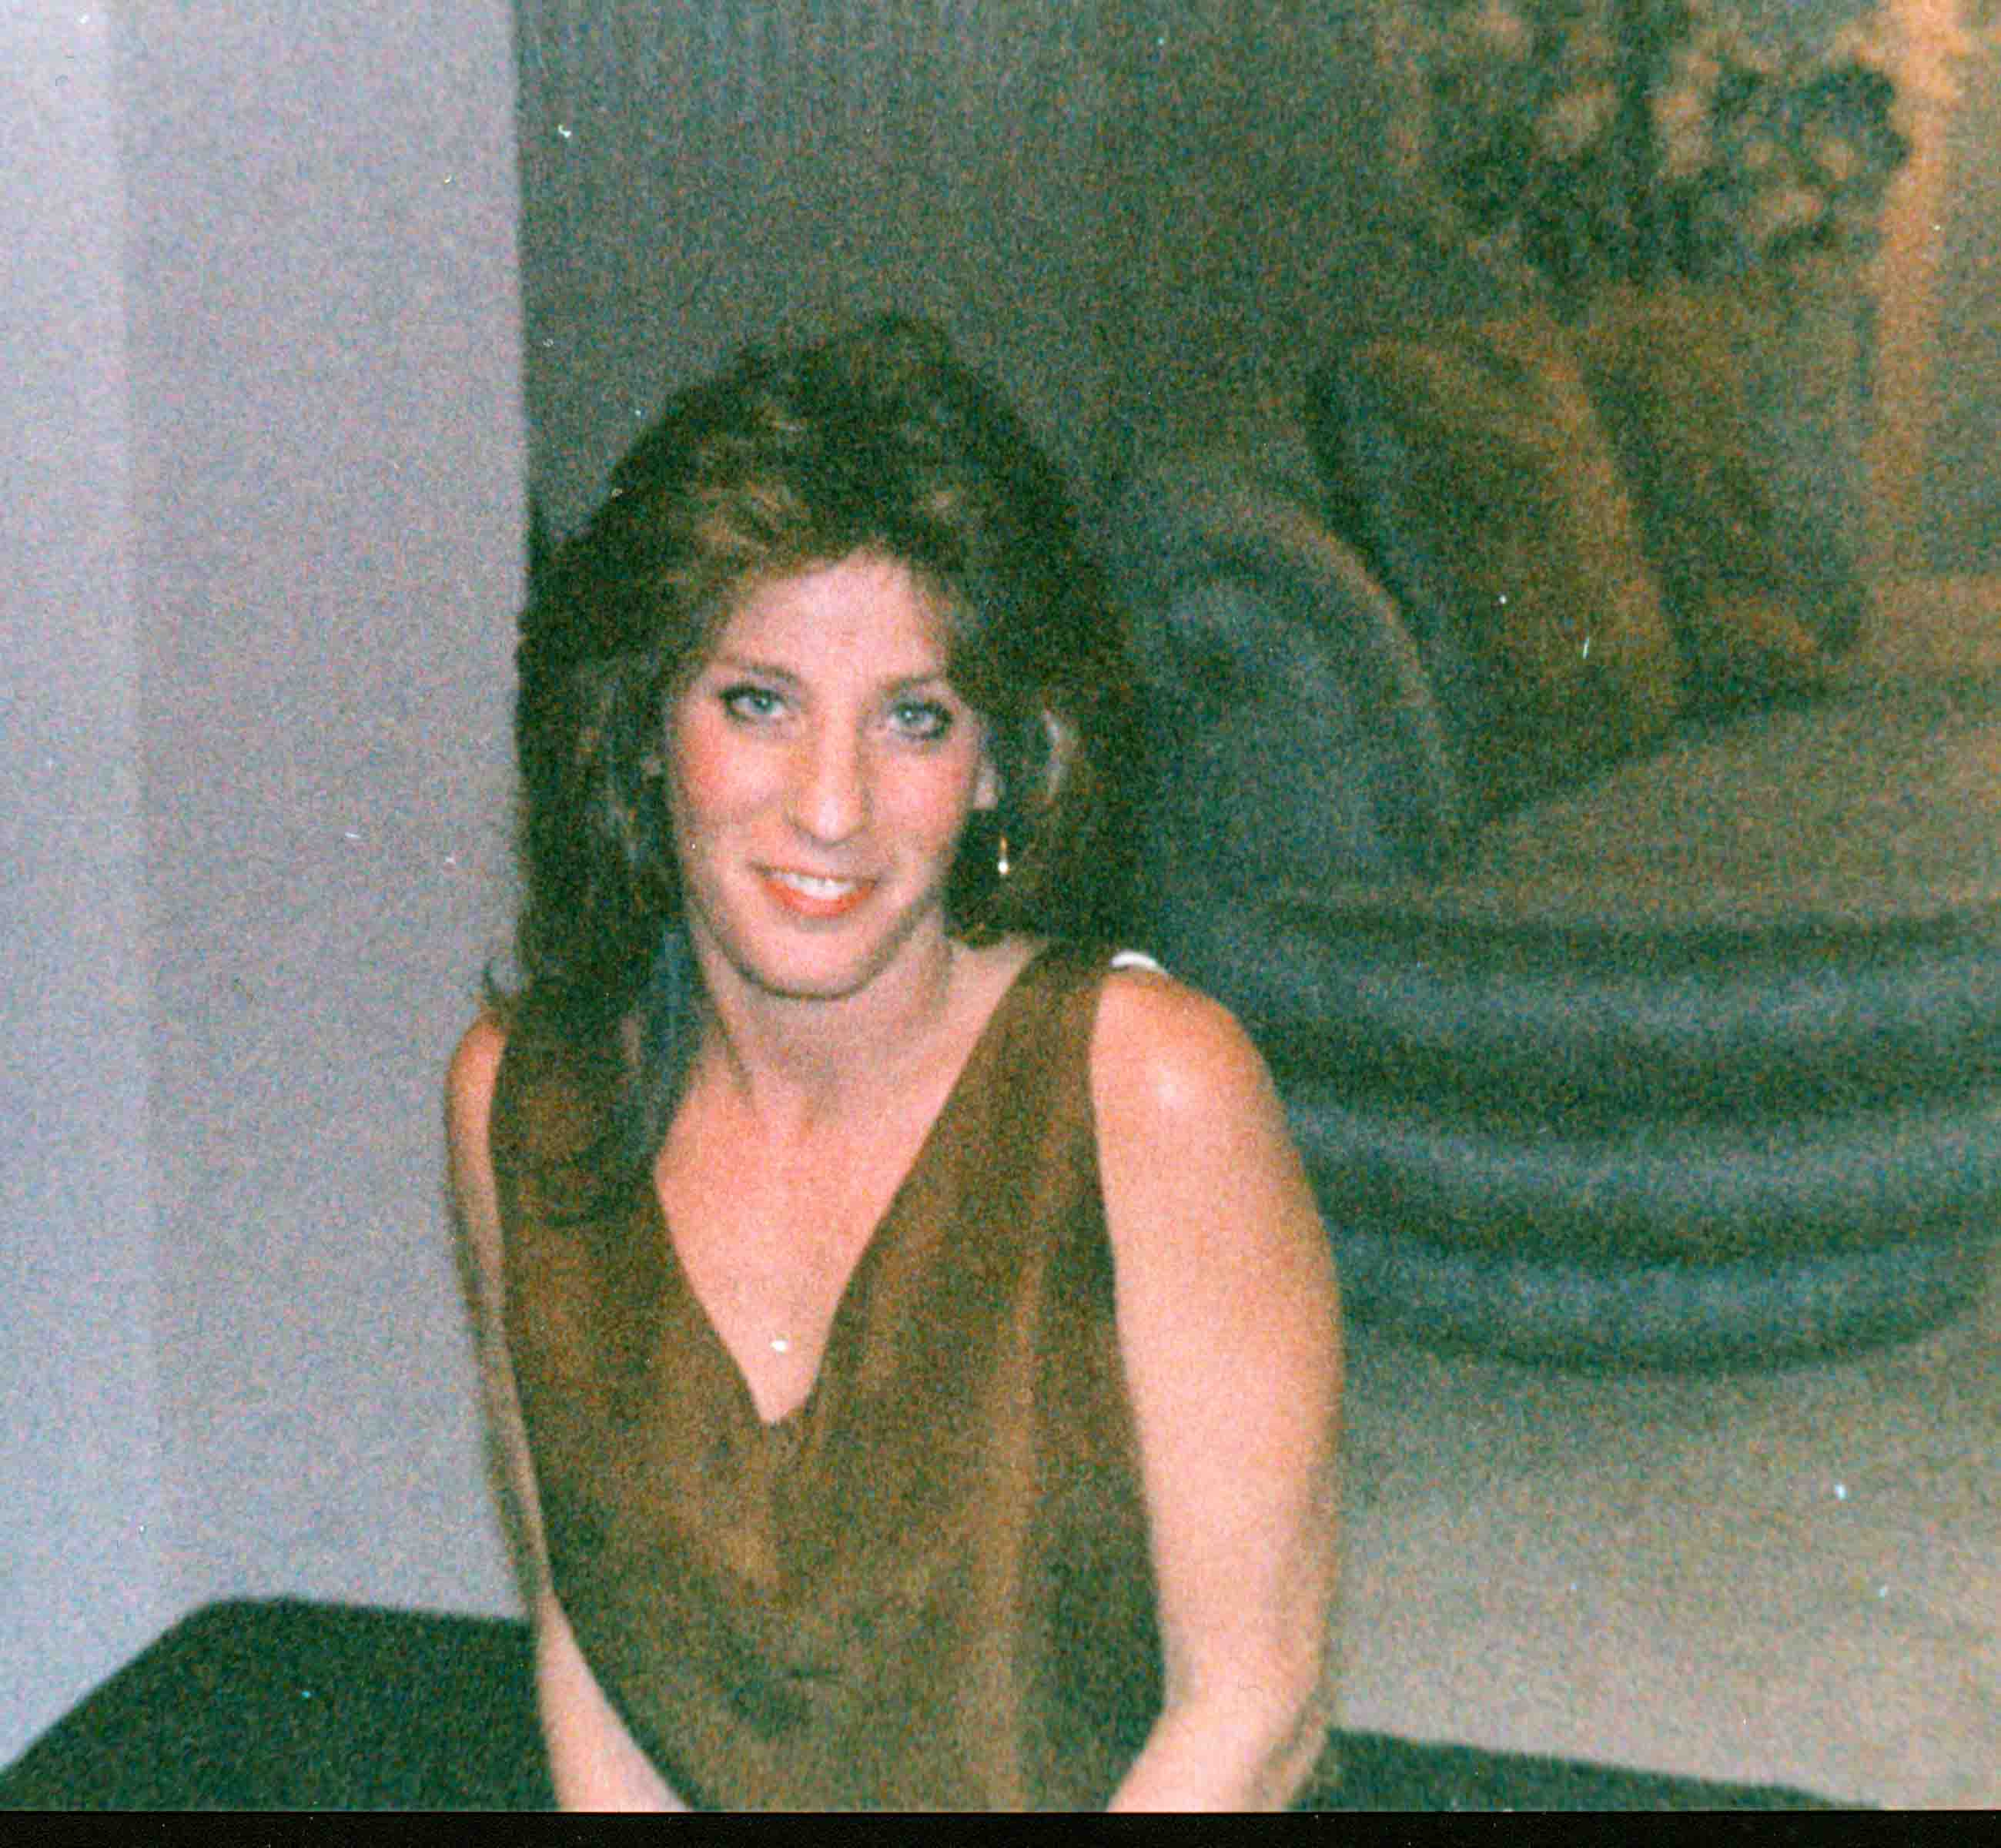 Michelle Lisa Adler 9/22/69 - 4/7/03 (A Falcon from the Class of 1984.)